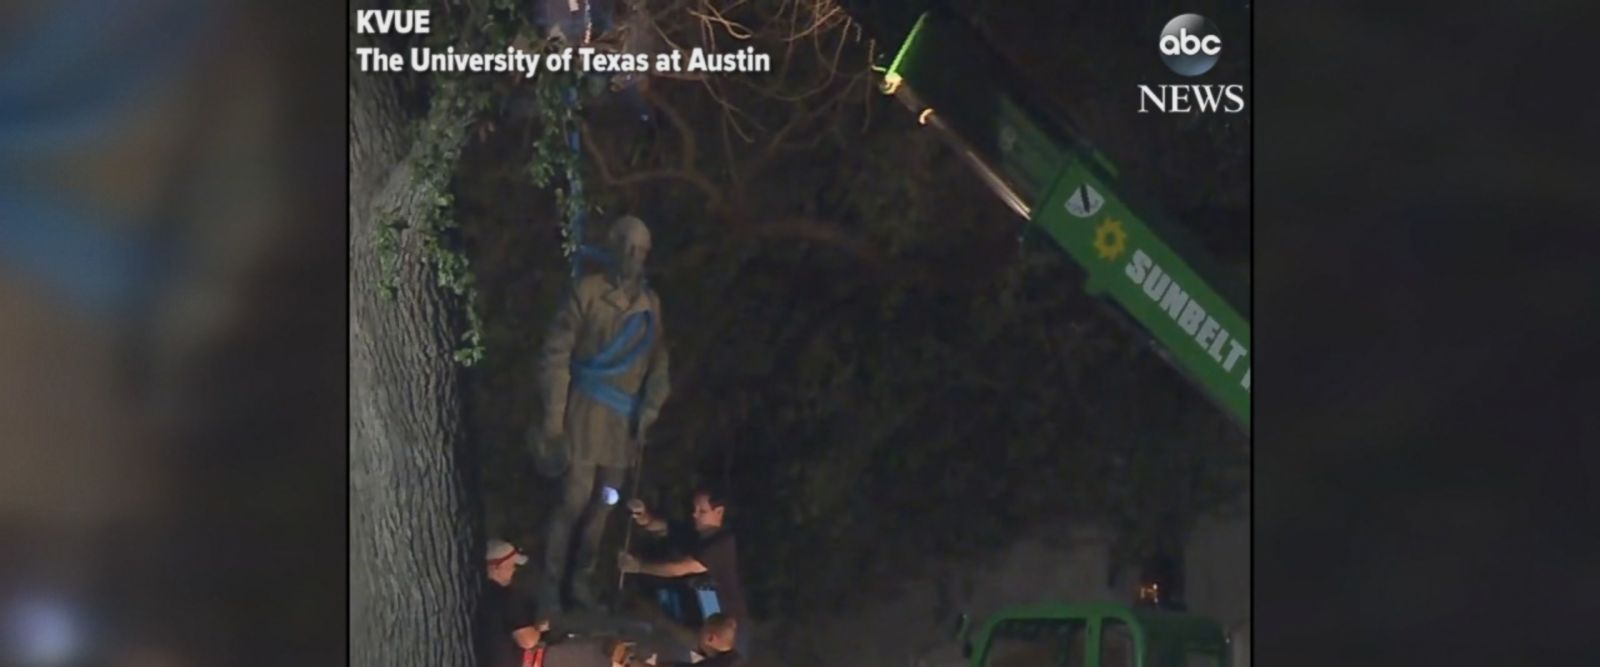 The University of Texas at Austin is removing four Confederate monuments that it says have become symbols of modern white supremacy and neo-Nazism, the school announced on Sunday.